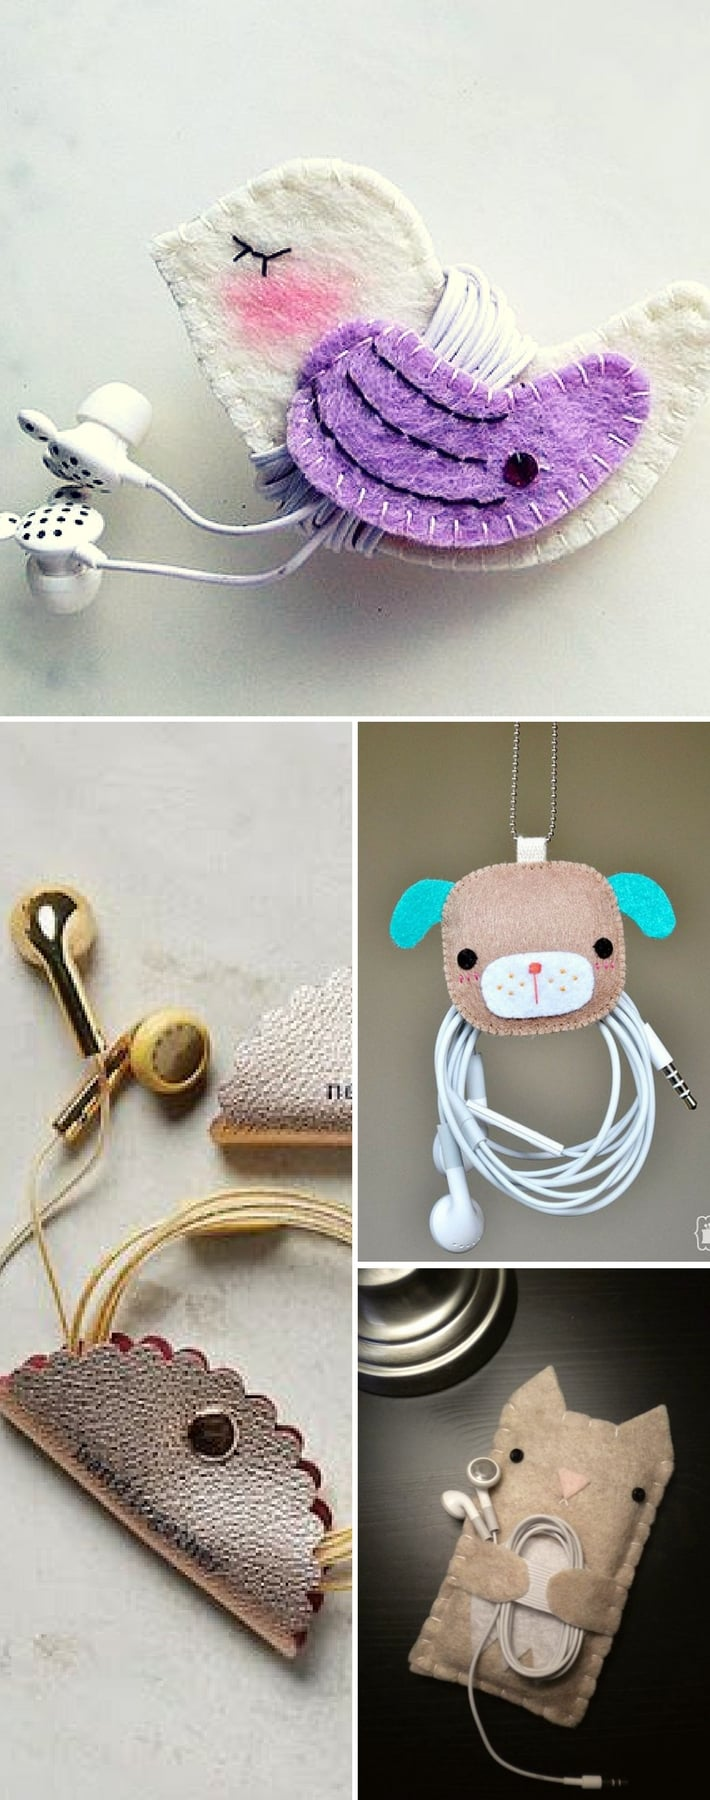 easy gift ideas-headphones